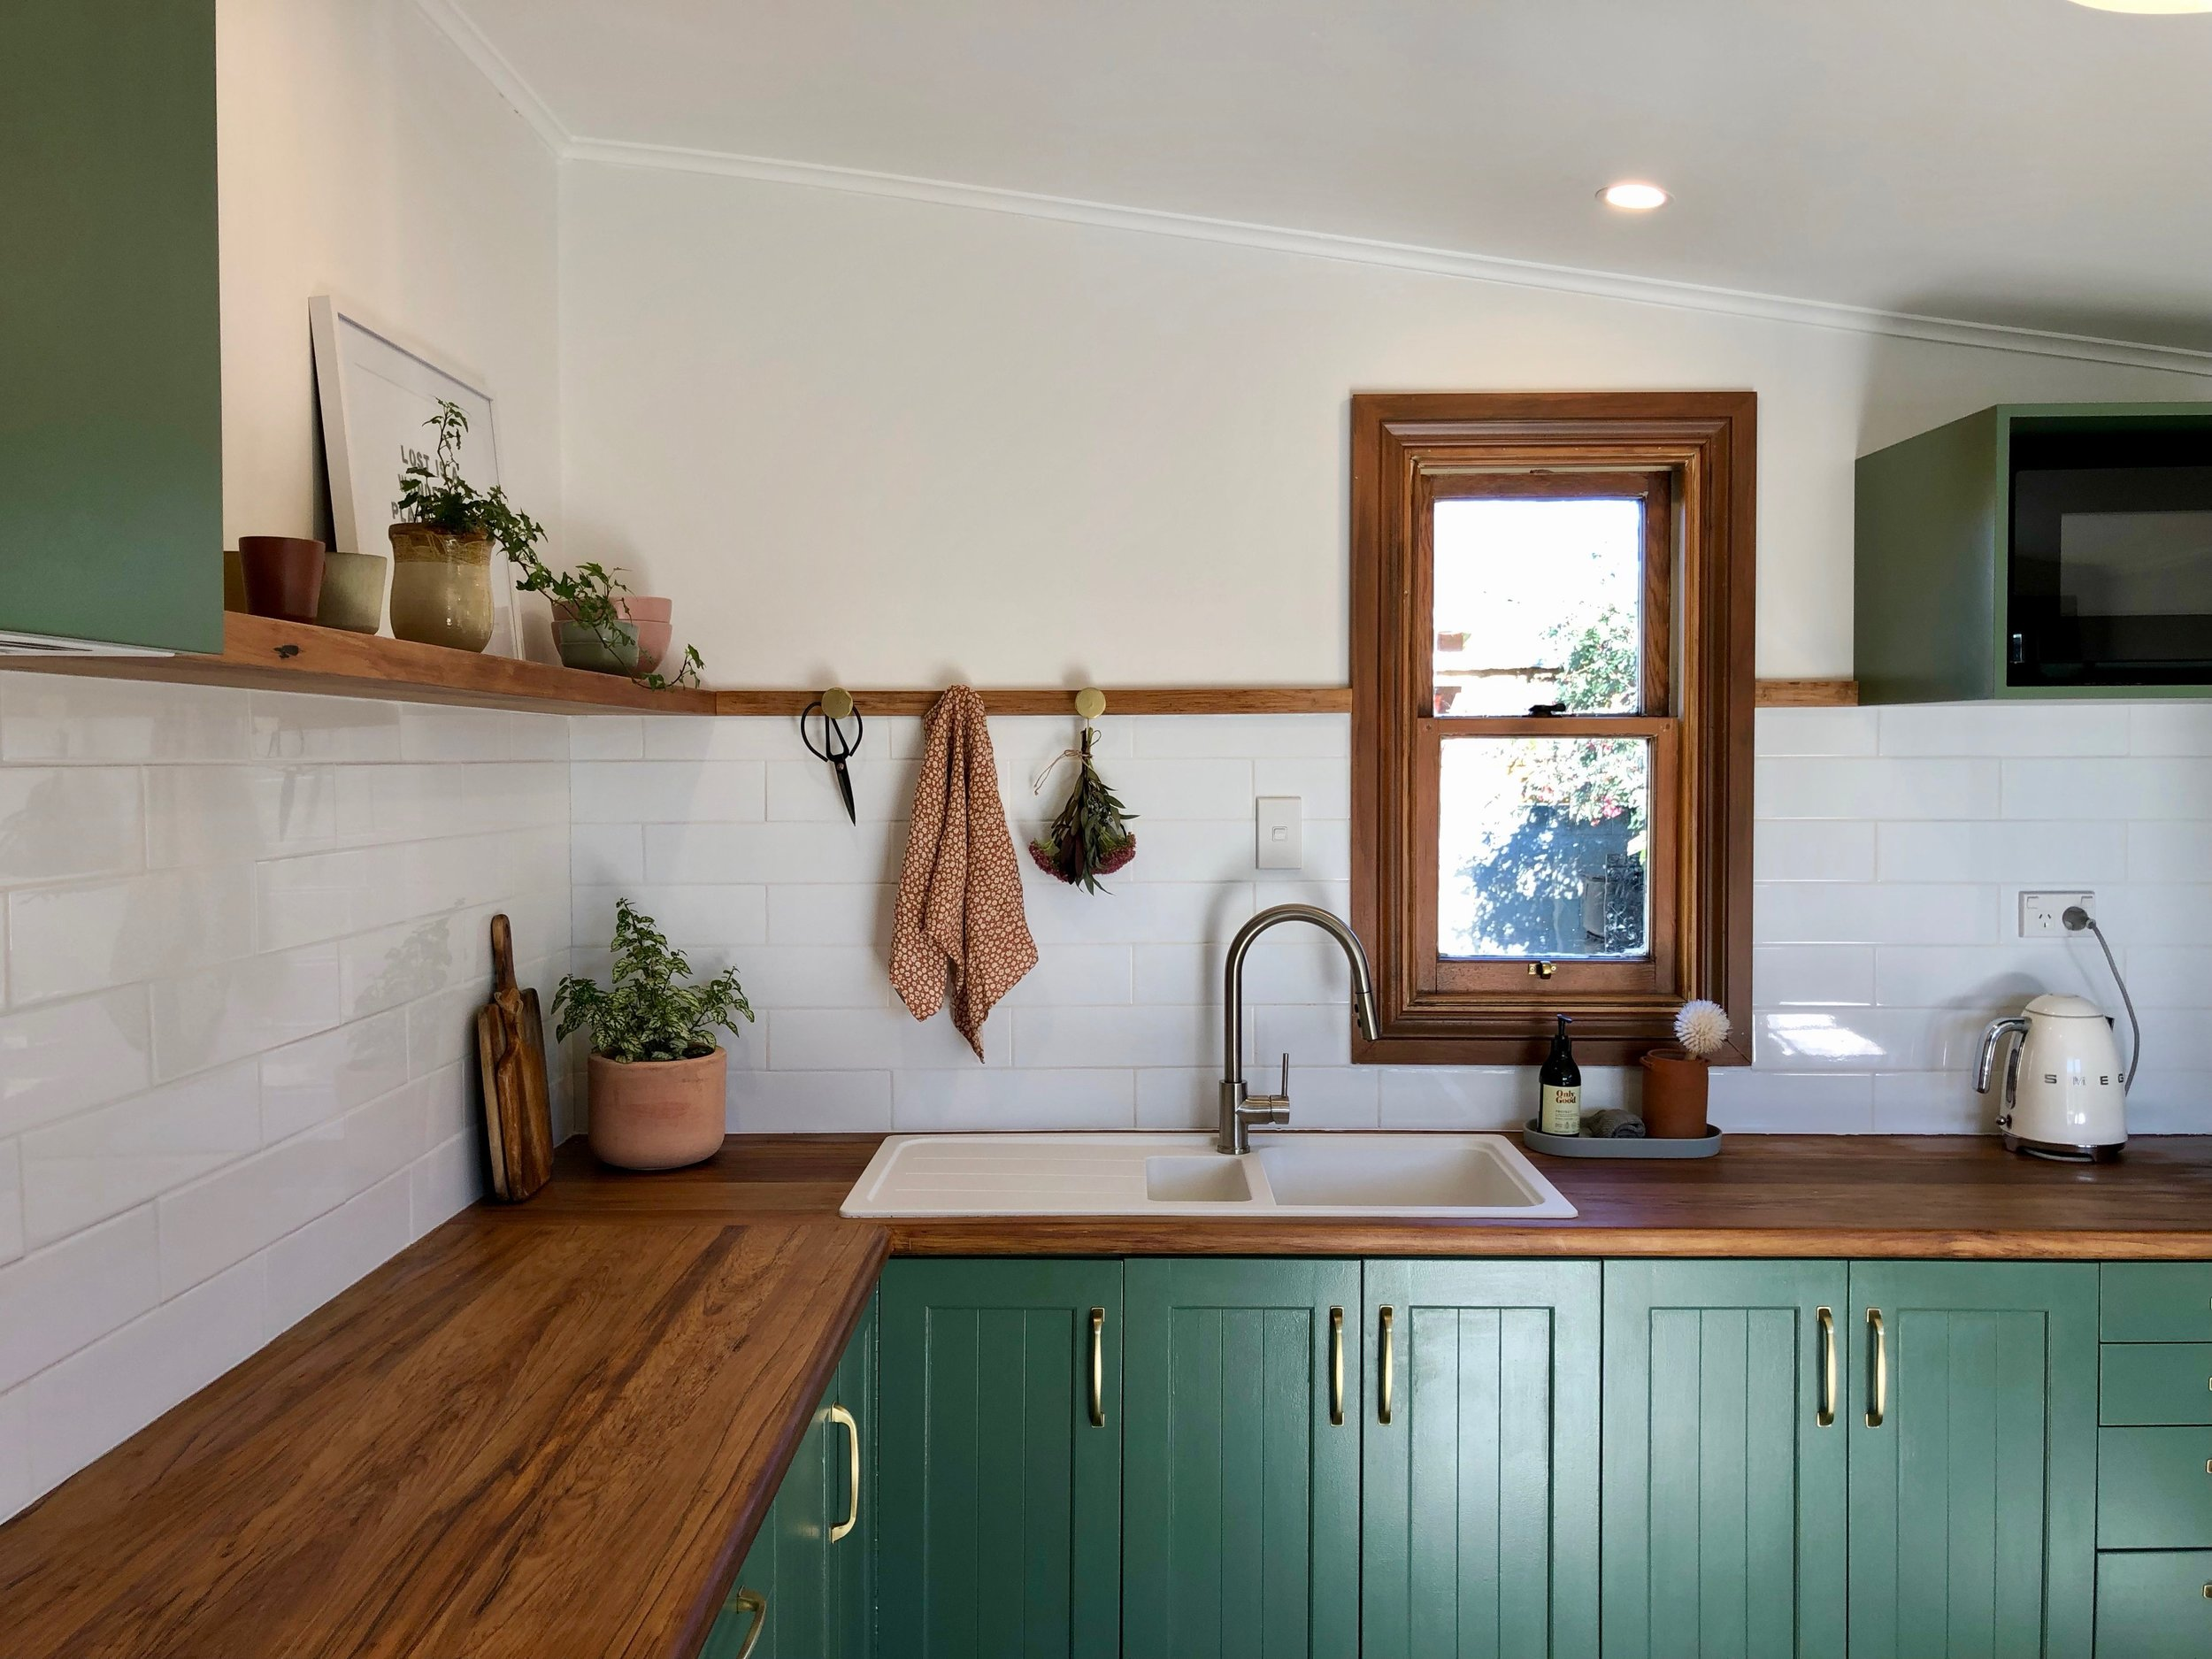 Pearson and Projects Kitchen Reveal Farmhouse Green Timber Bench Shelf Breakfast Table White Sink Cottage - 8.jpg